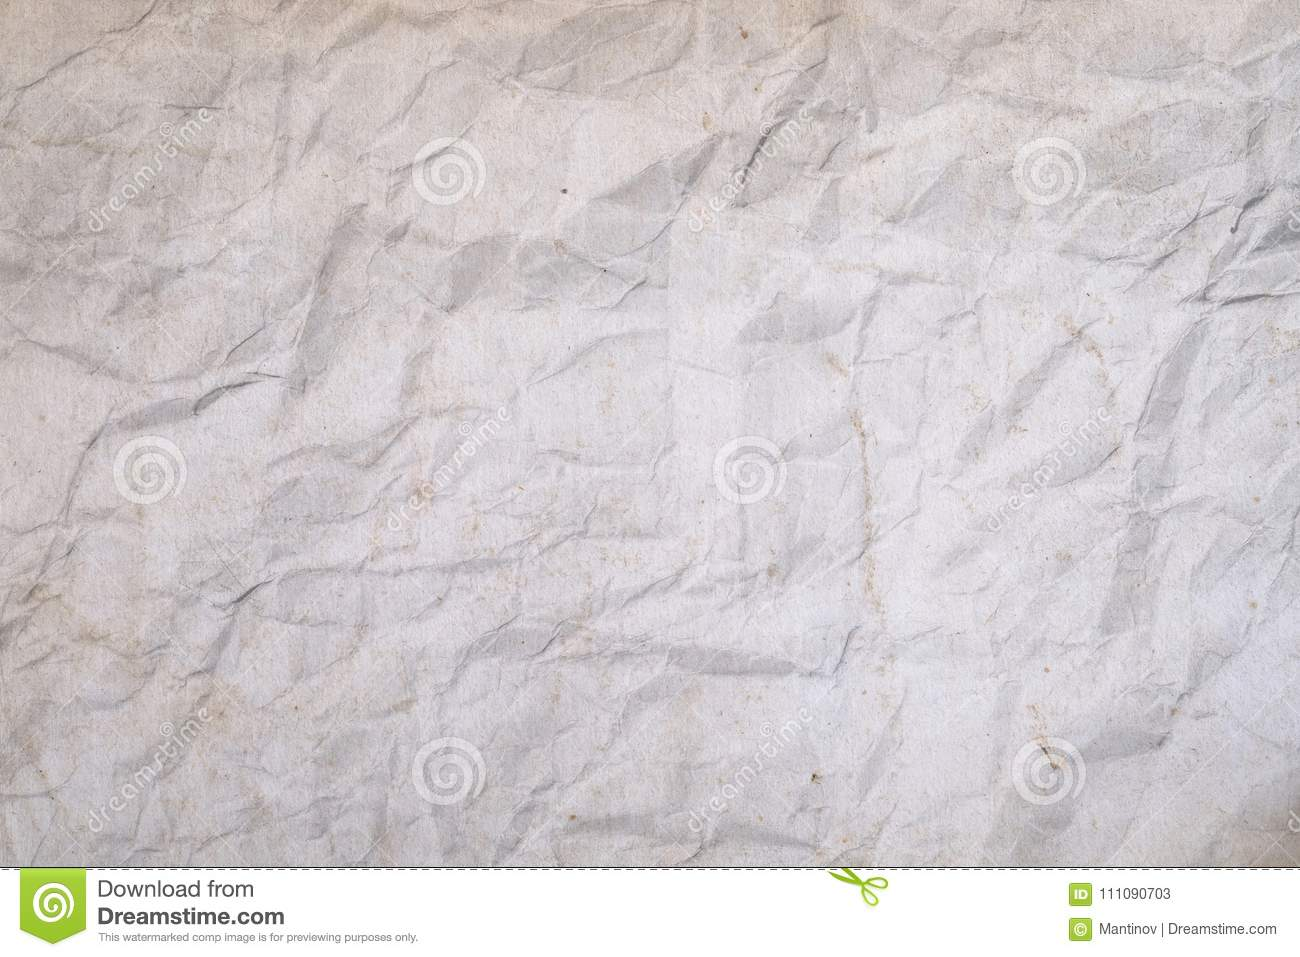 grunge white crumpled paper texture stock image - image of abstract